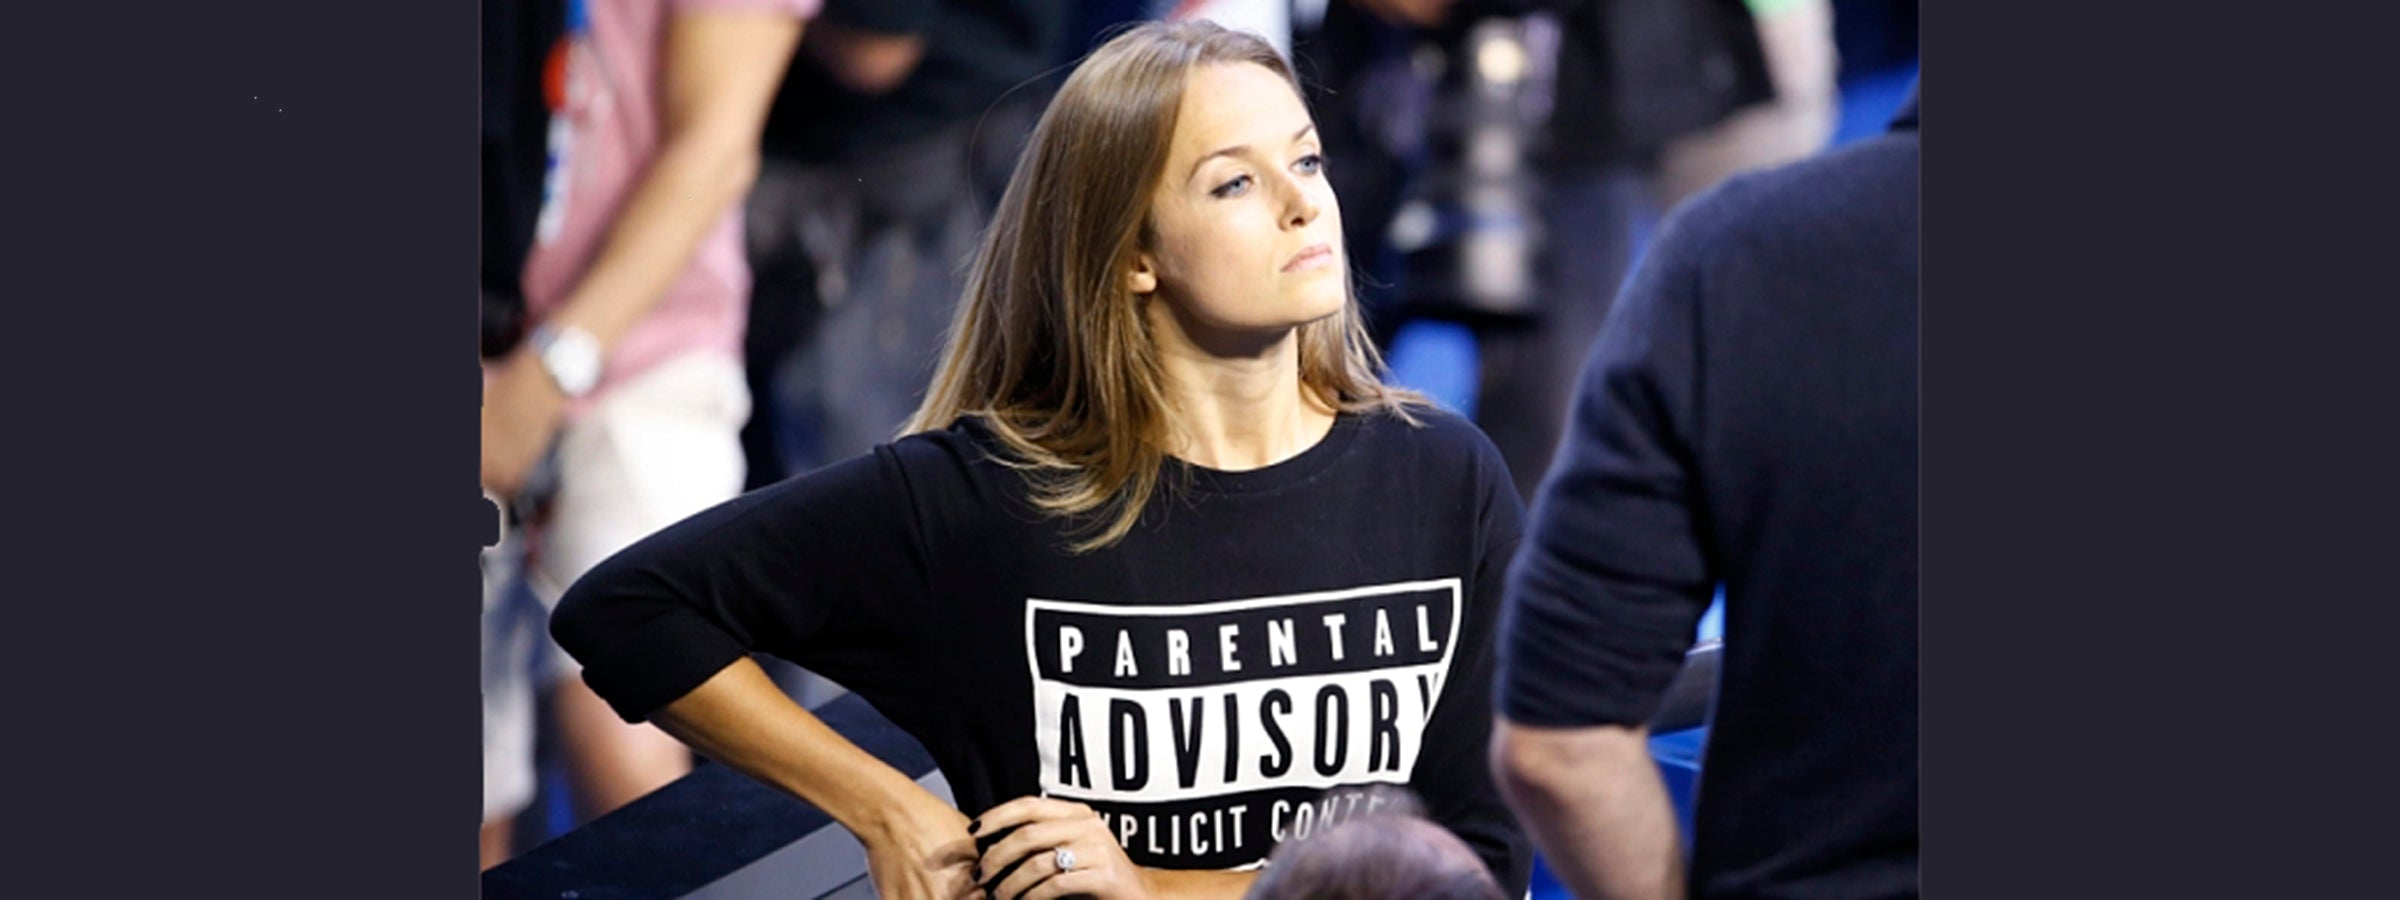 Woman wearing shirt that says parental advisory explicit content